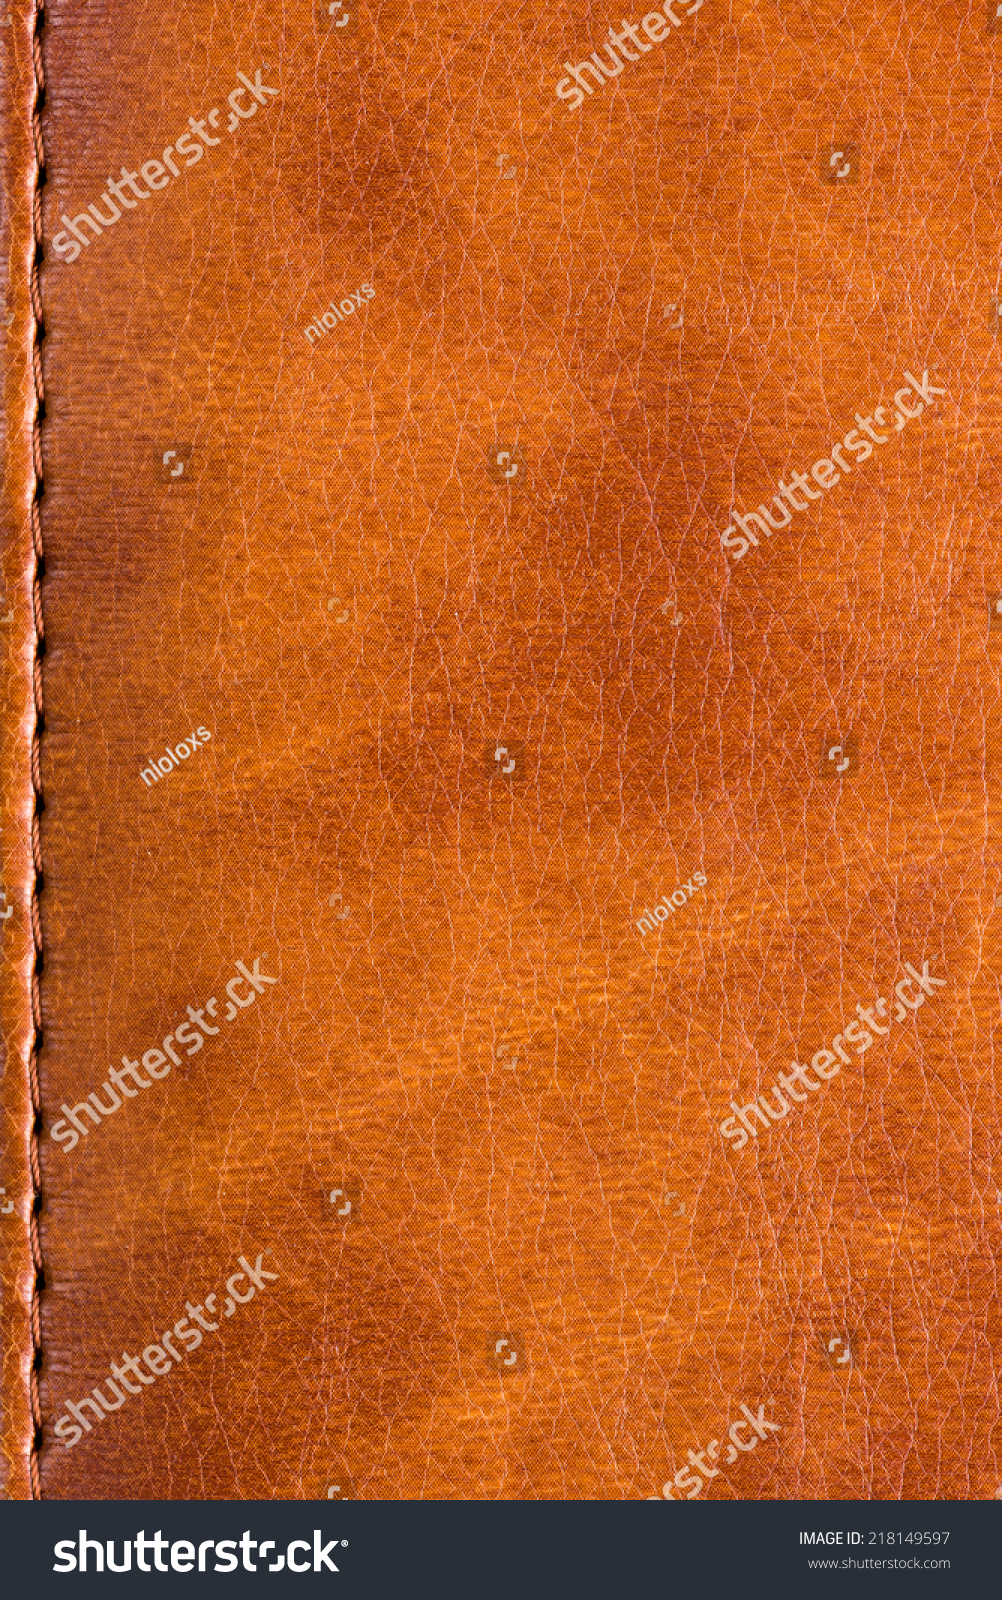 Book Cover Texture Photo ~ Skin book cover texture stock photo shutterstock